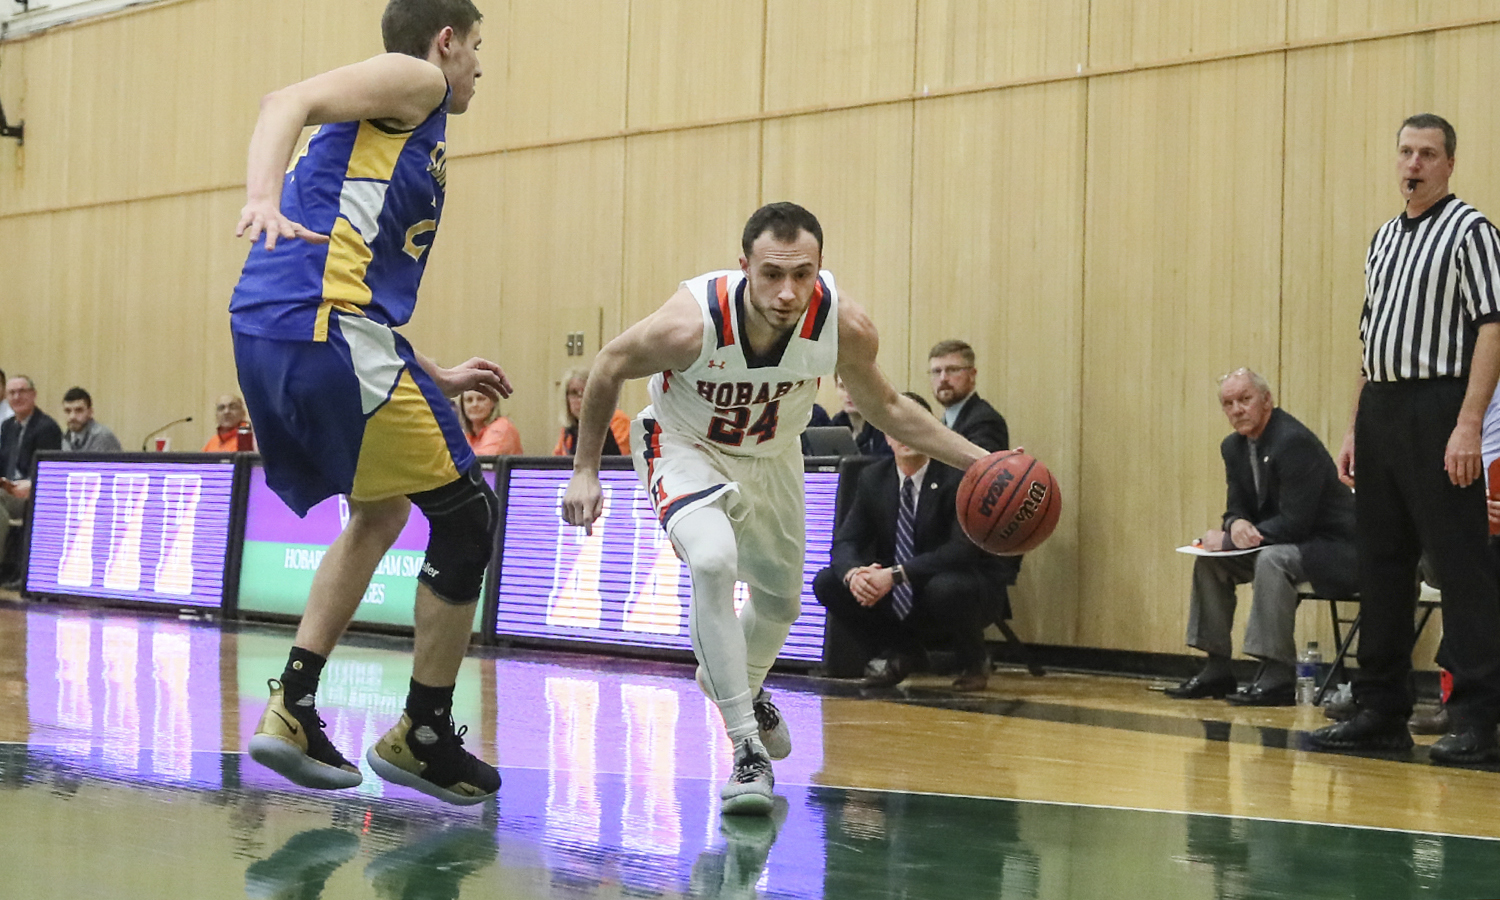 Cort Williams '19 drives to the basket in a non-conference game against SUNY Polytechnic Institute. The Statesmen won 81-43.